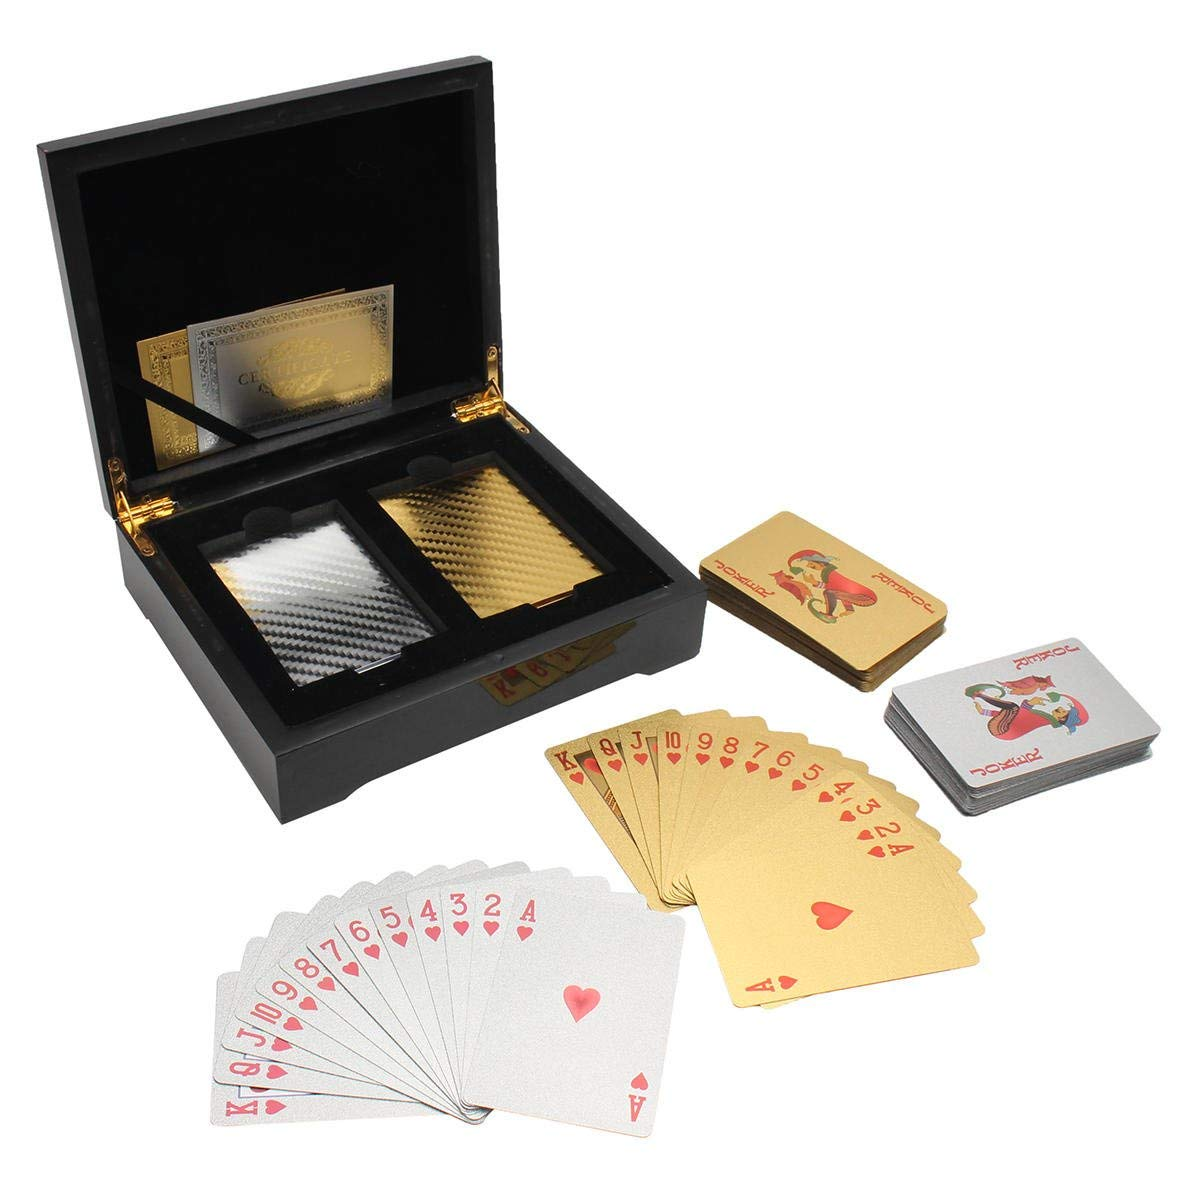 24k Gold/Silver Foil Playing Cards 2 Deck Poker Brown Wooden Box Gifts Game Casino - Hardware & Accessories Storage & Organization - 1 x Poker Collection Wooden Box, 1 x 54 Silver Playing Cards